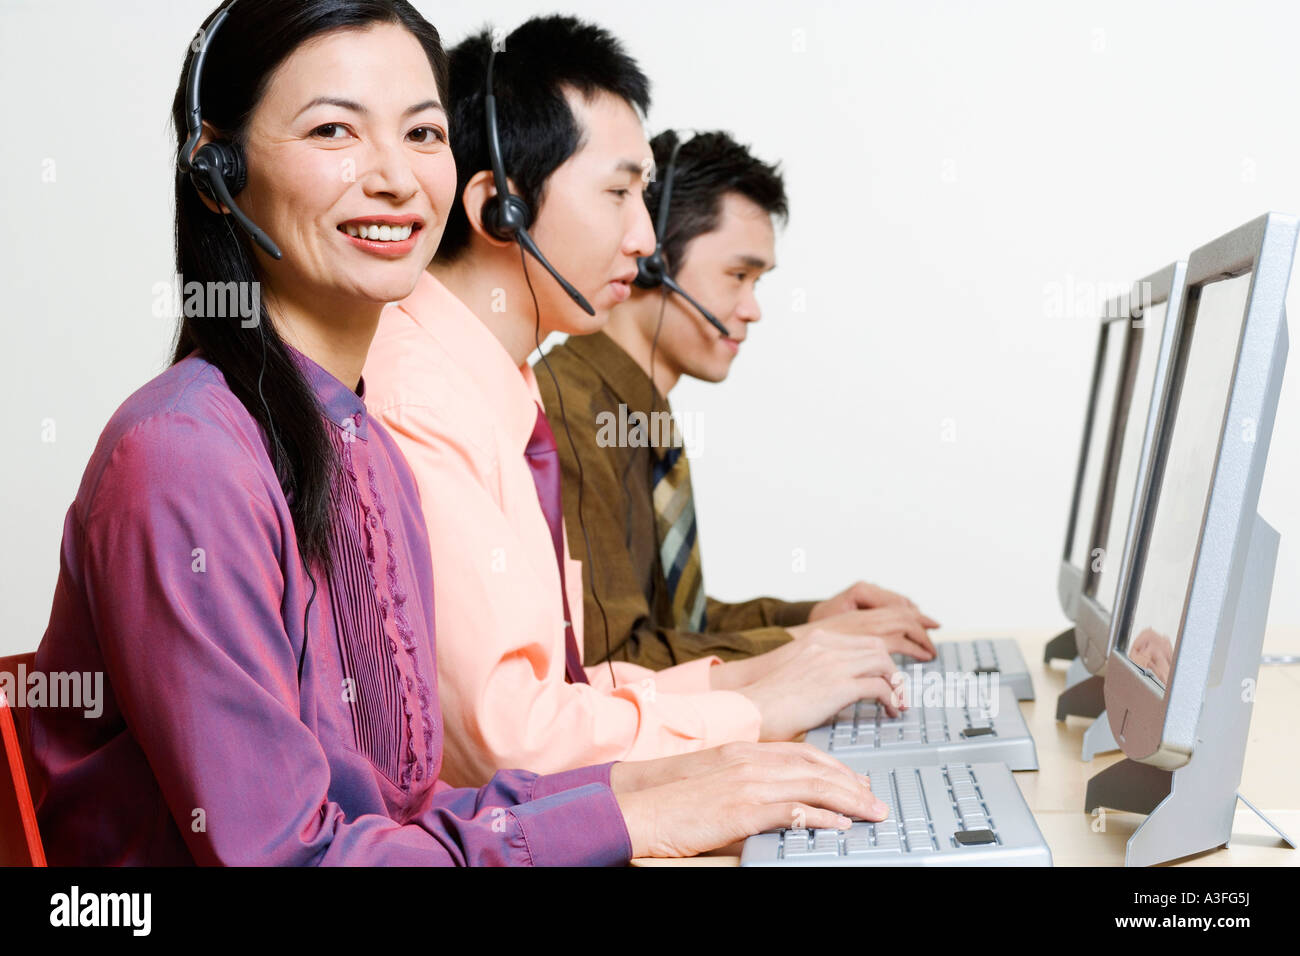 Three customer service representatives working on computers Stock